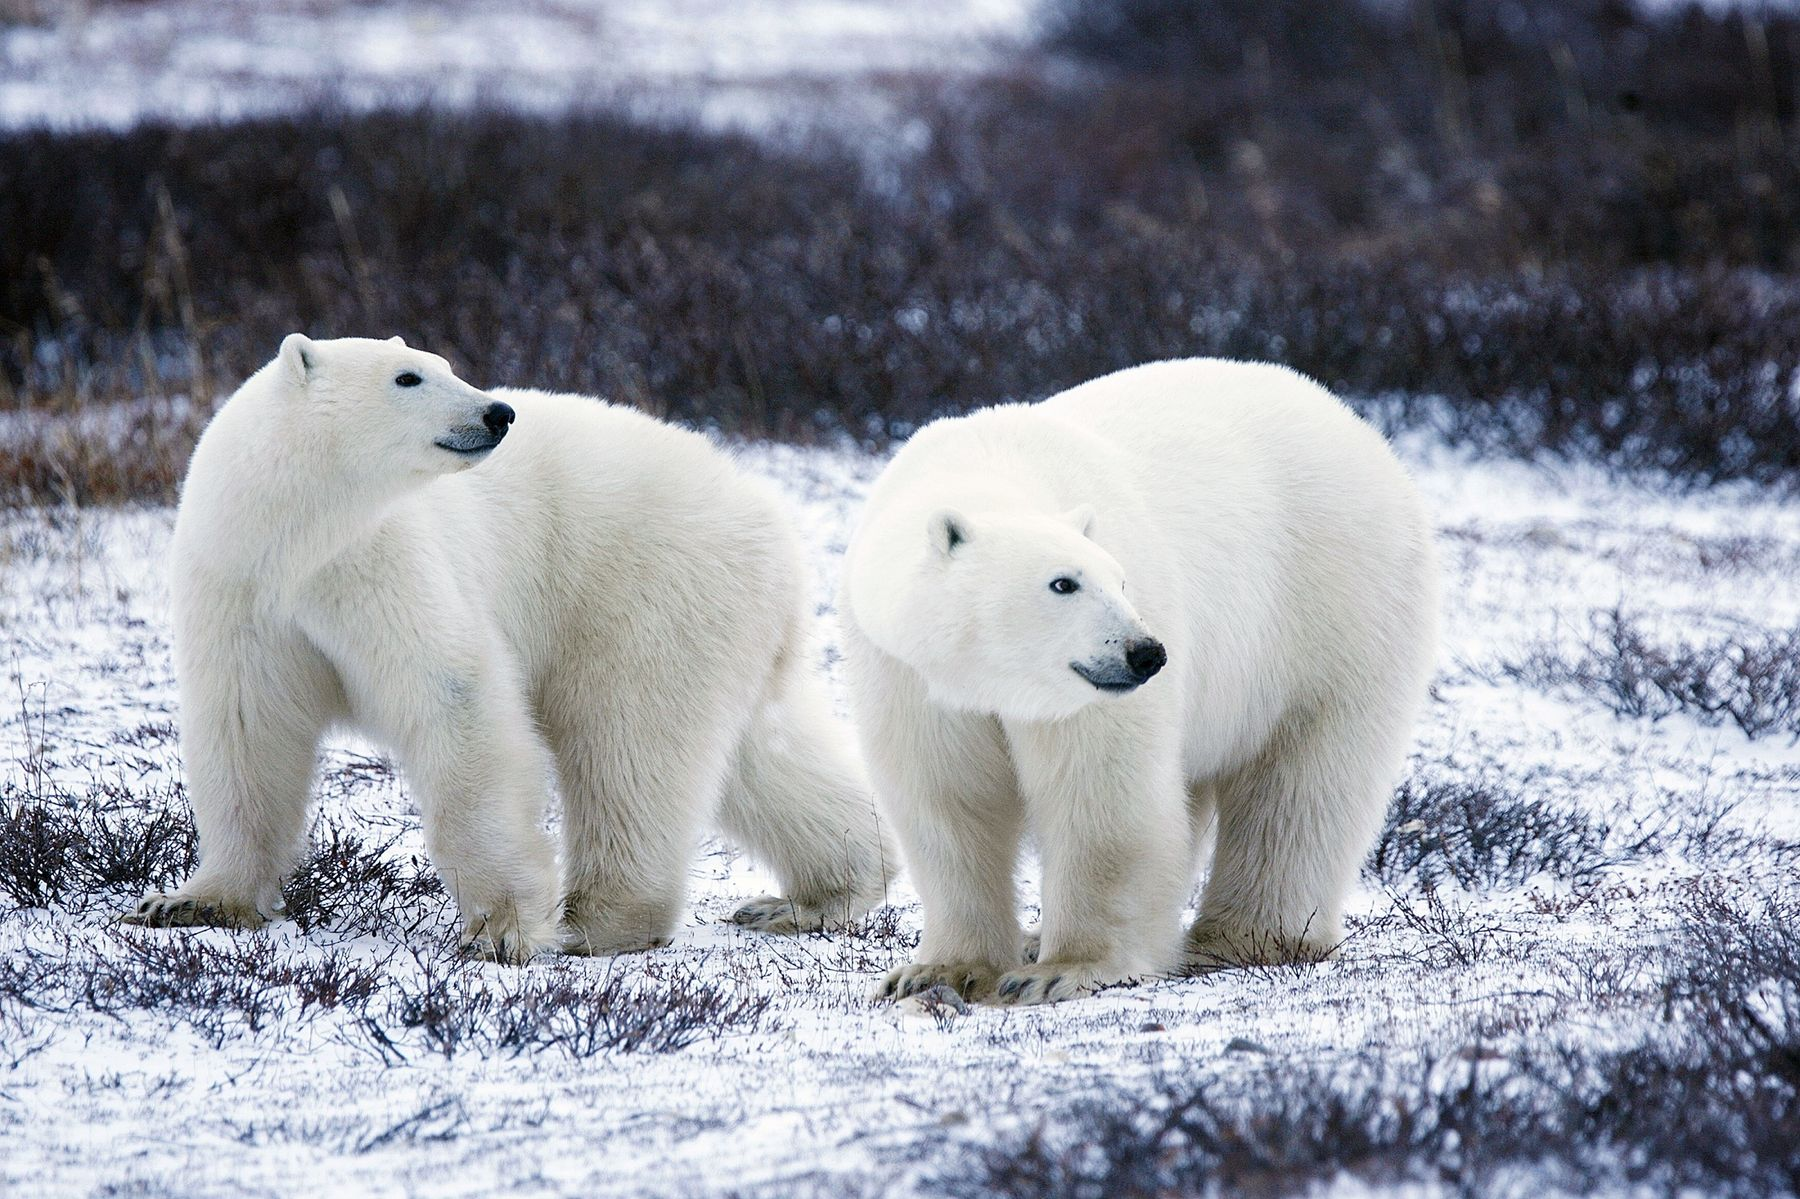 Watching live polar bear cams is one way to support wildlife ecotourism initiatives from home.